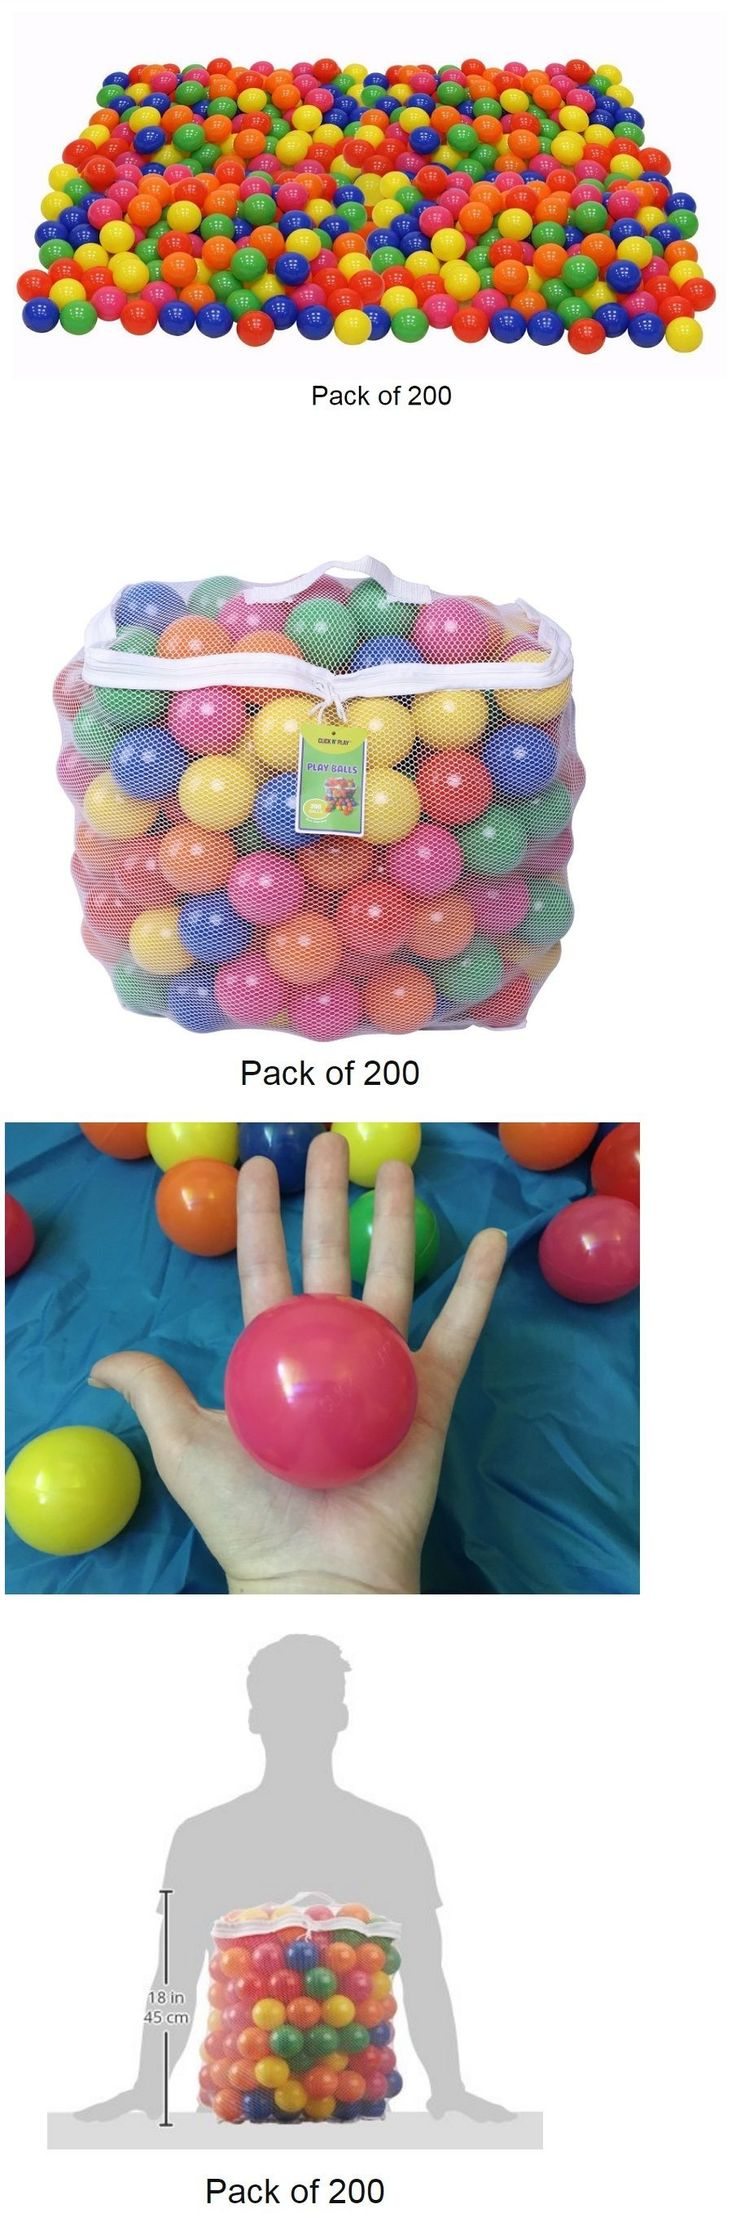 Pit Balls 145996: 200 Pcs Pit Ball Crush Proof Plastic Swimming Pool Toy Kid Party, Phthalate Free -> BUY IT NOW ONLY: $42.49 on eBay!